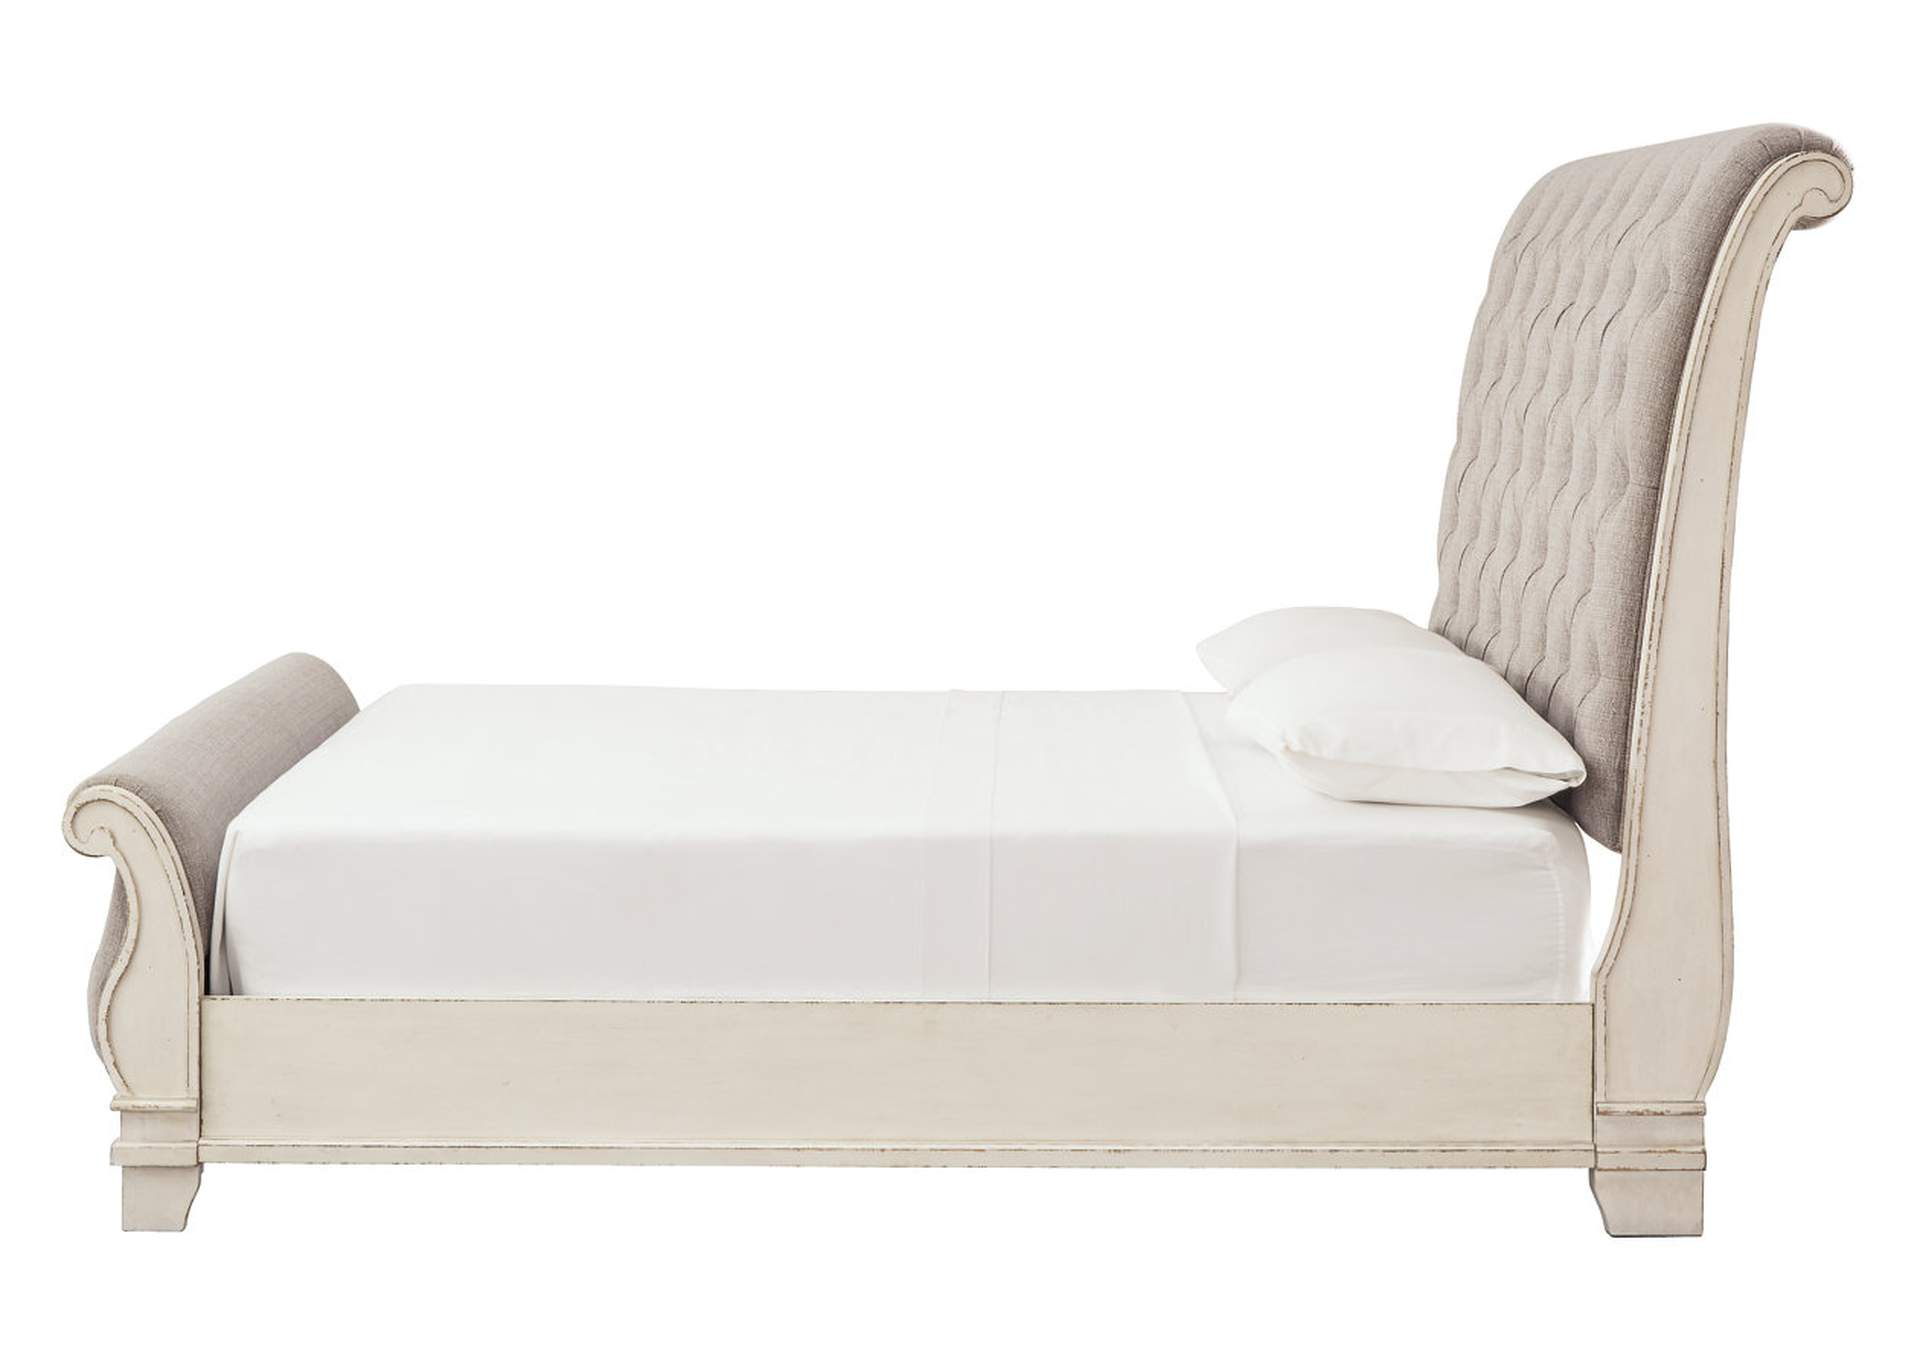 Realyn Chipped White Queen Sleigh Bed,Signature Design By Ashley